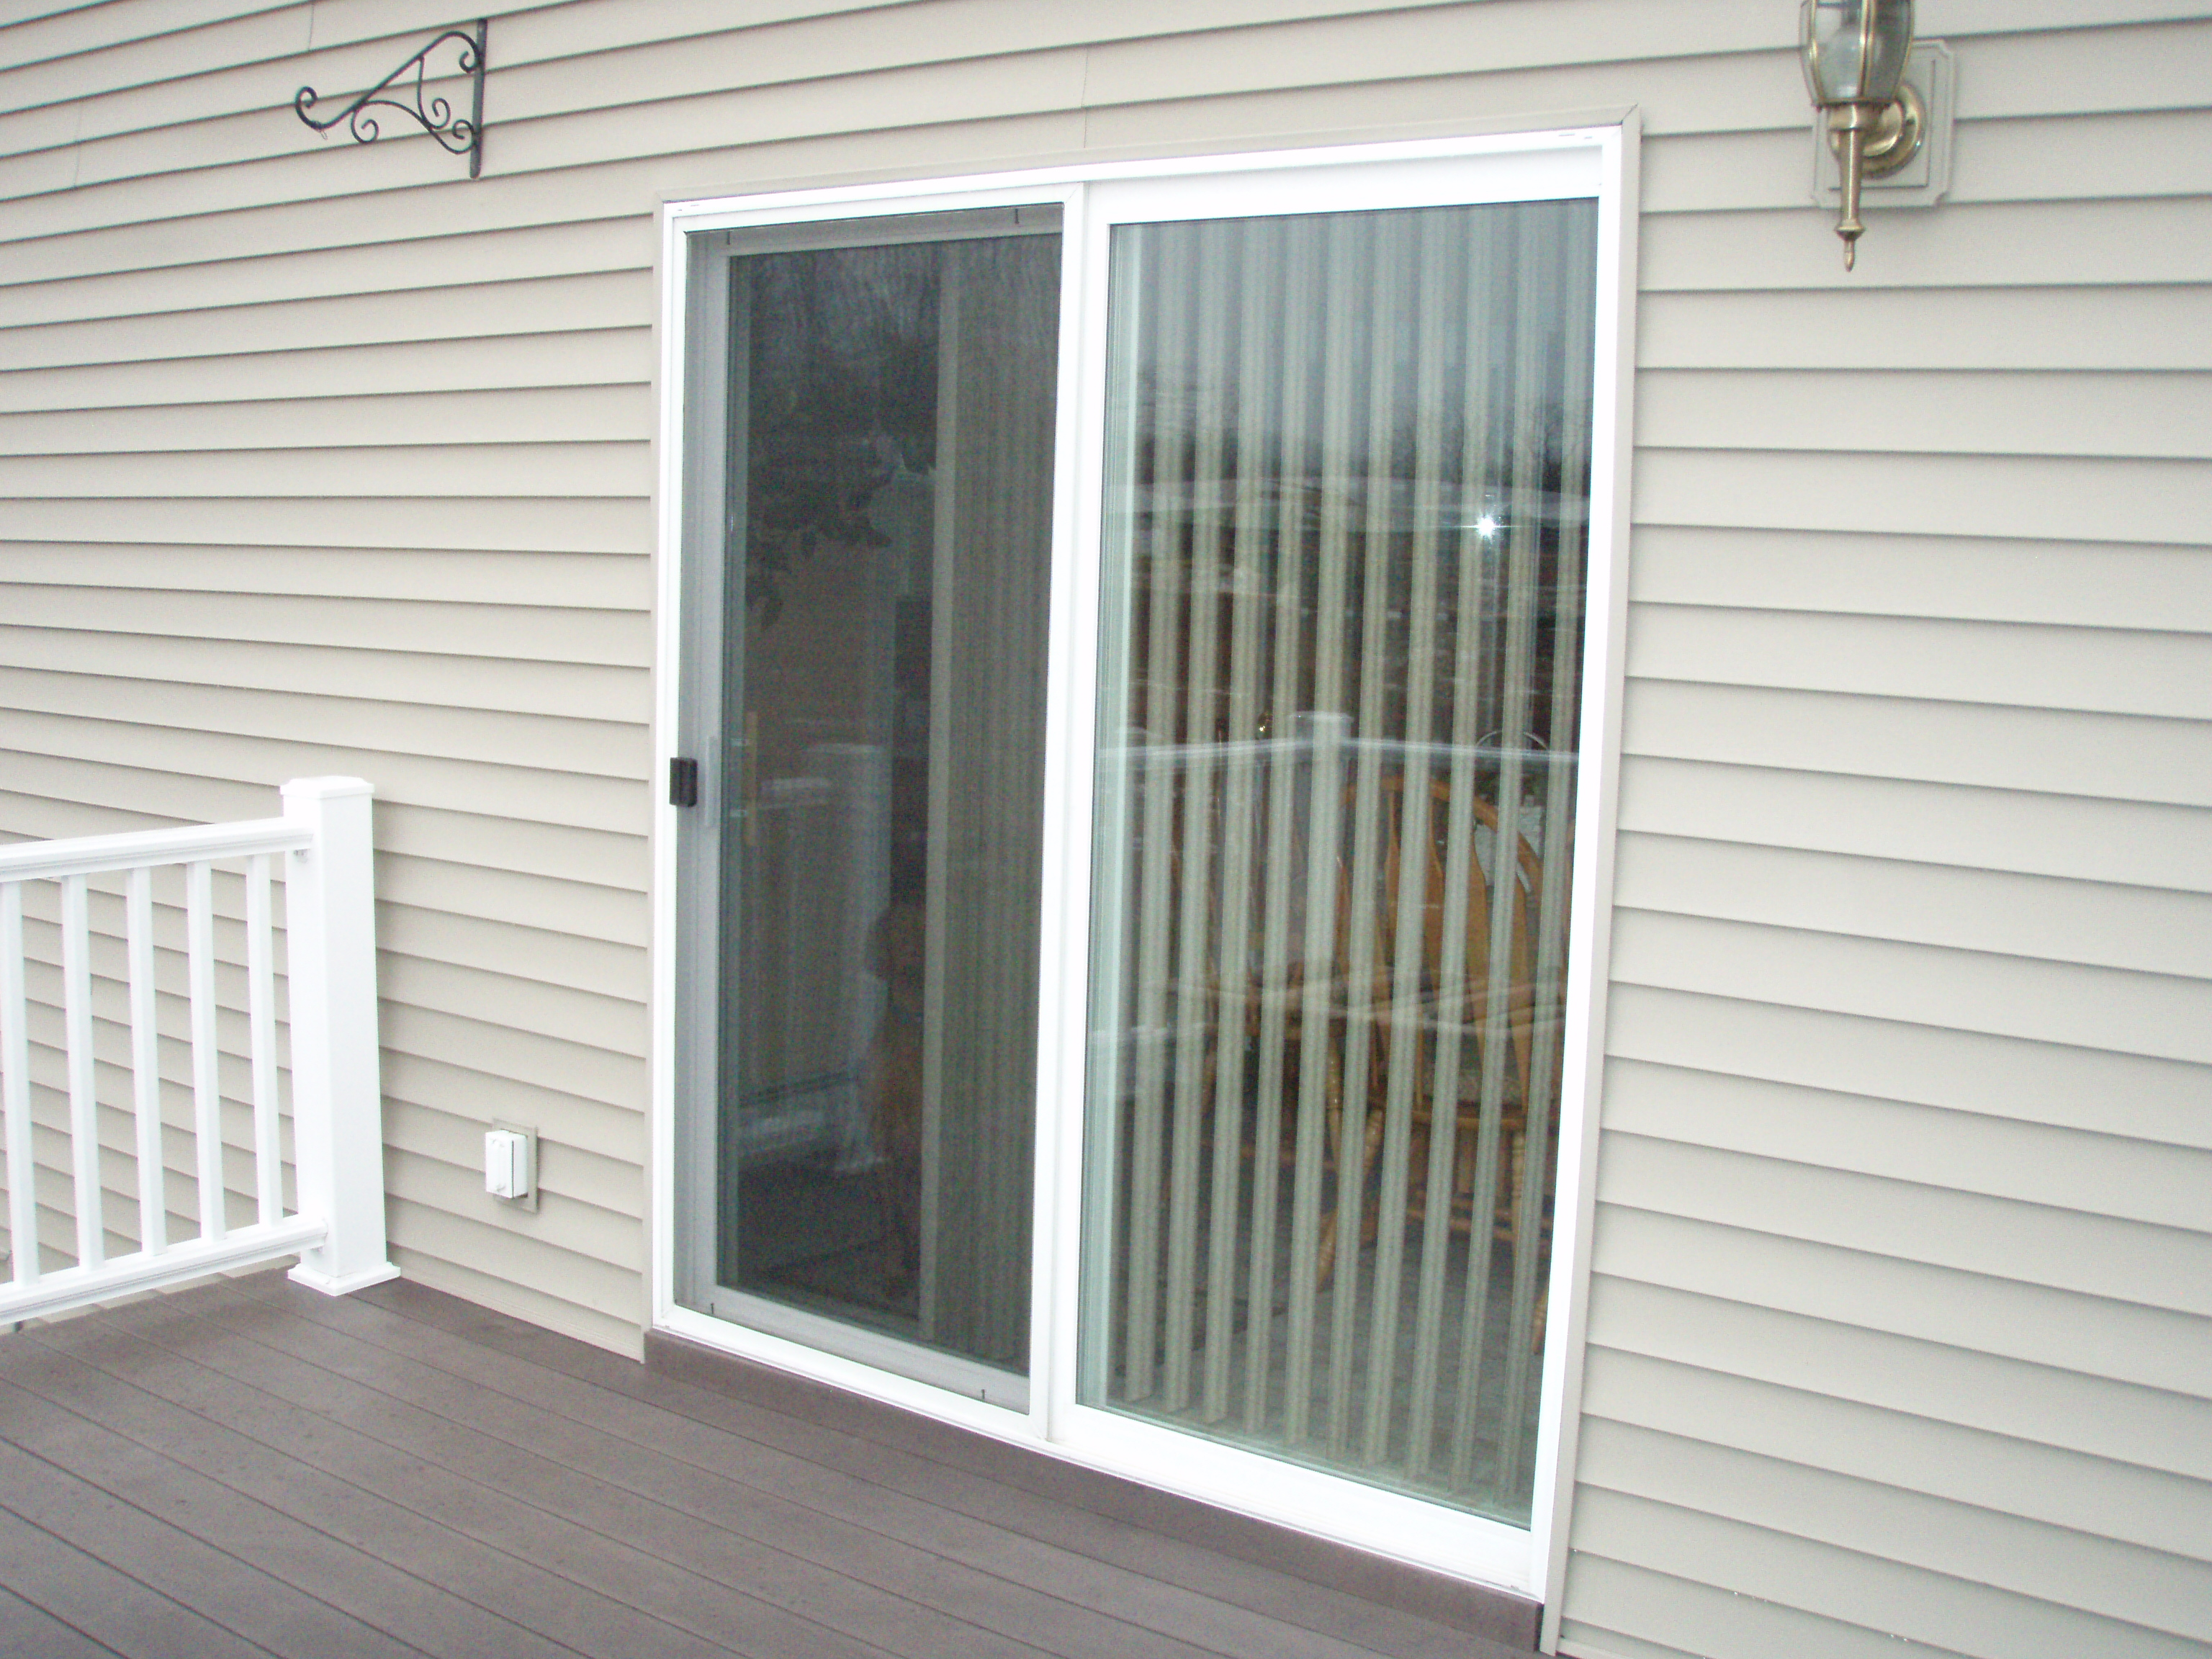 Exterior French Doors For Mobile Home on